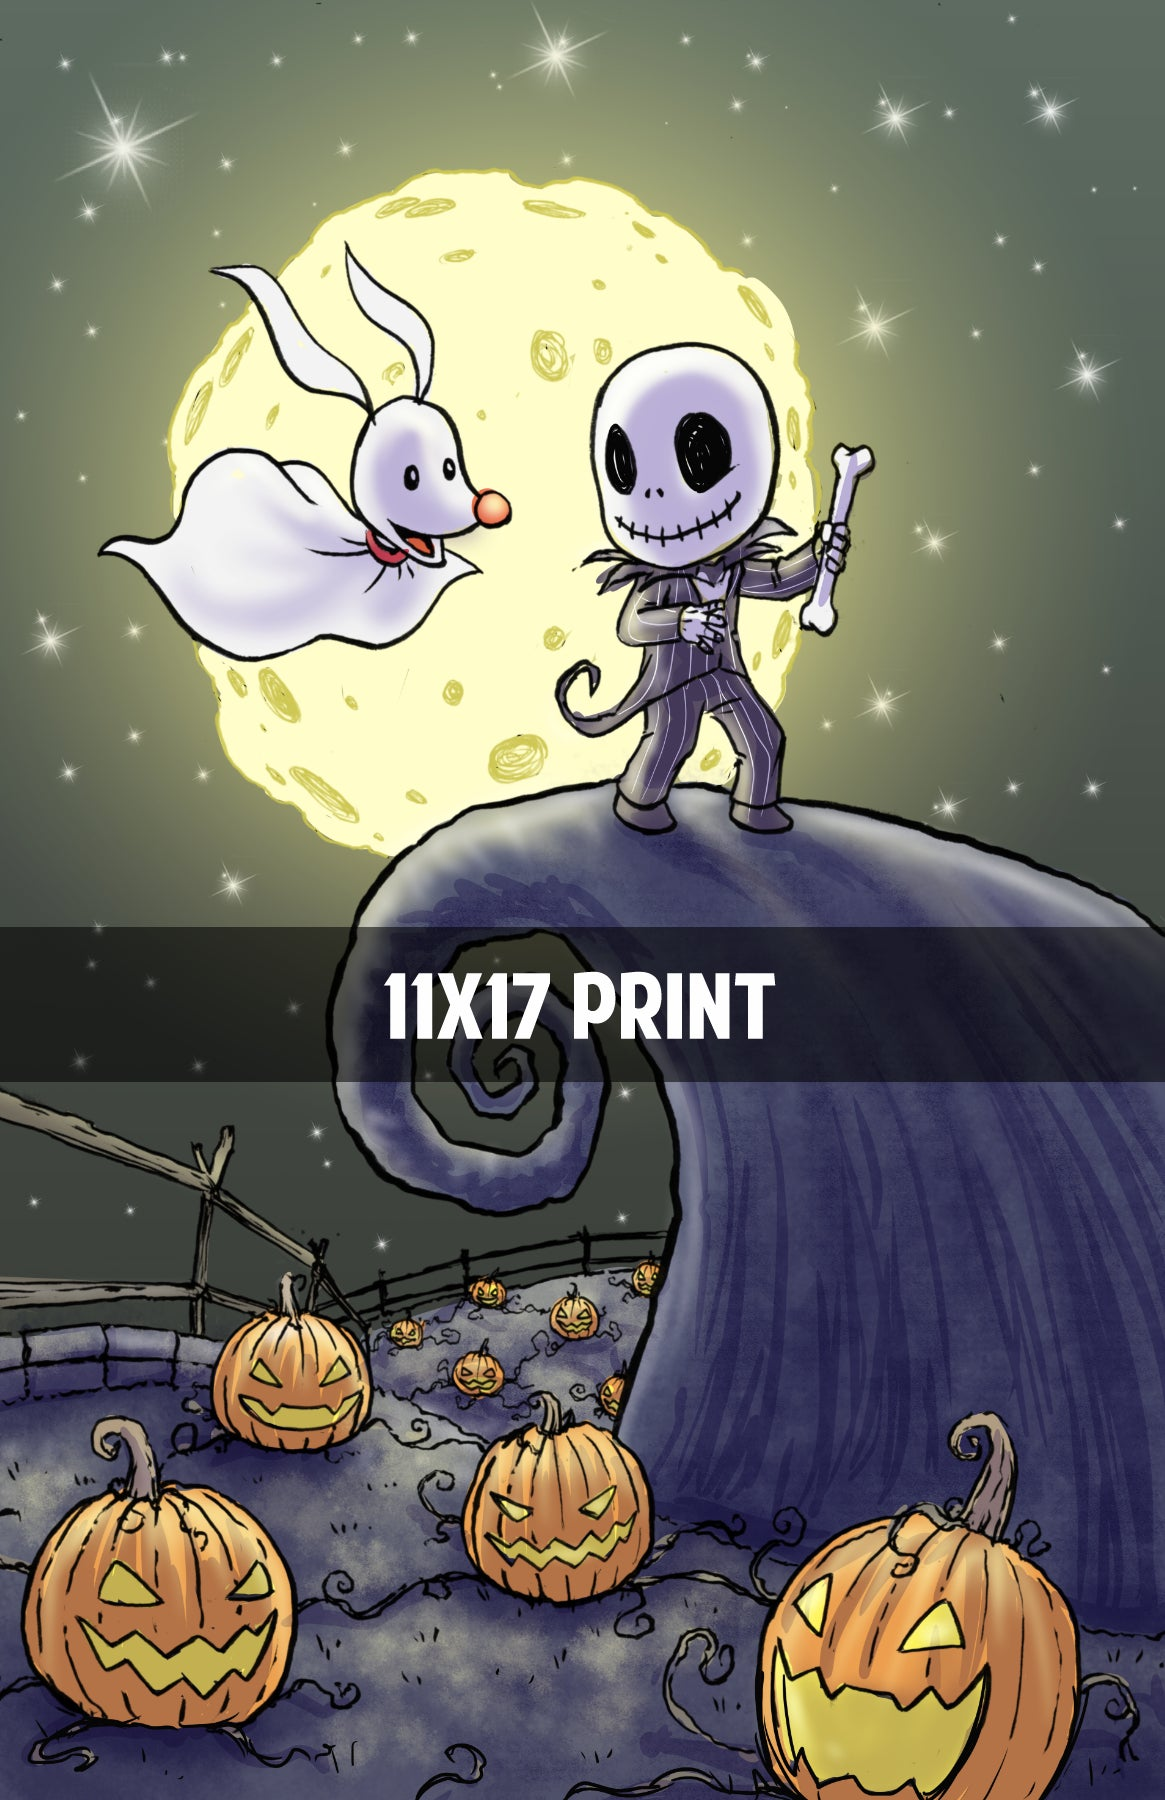 Nightmare Before Christmas - 11x17 Print